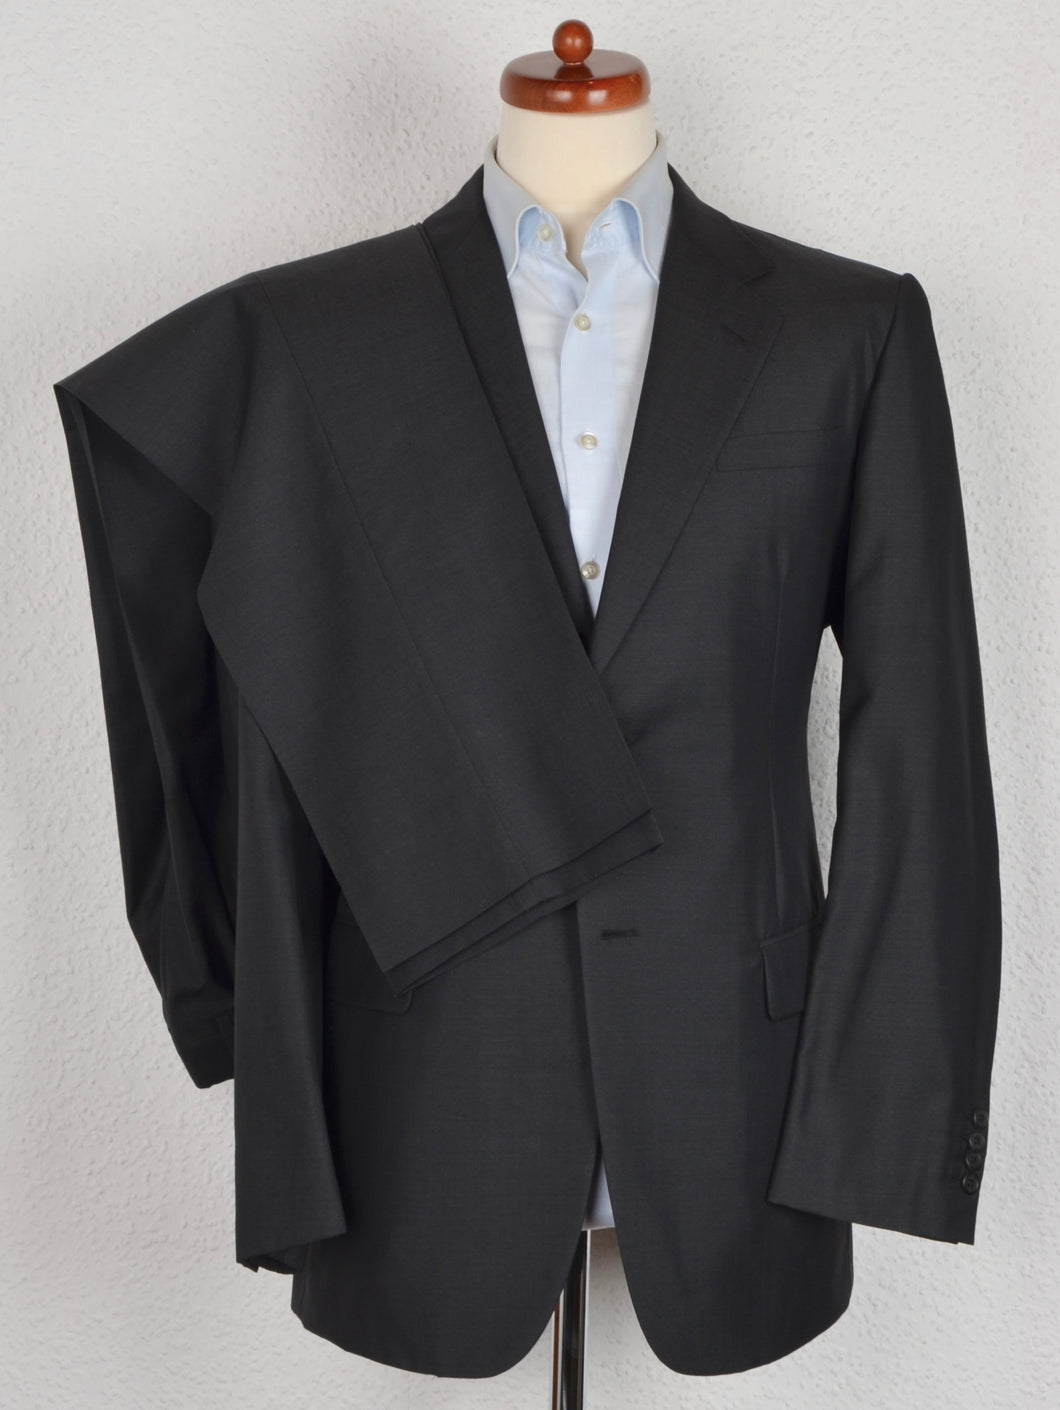 Prada Milano Wool/Silk Suit Size 52 - Dark Grey